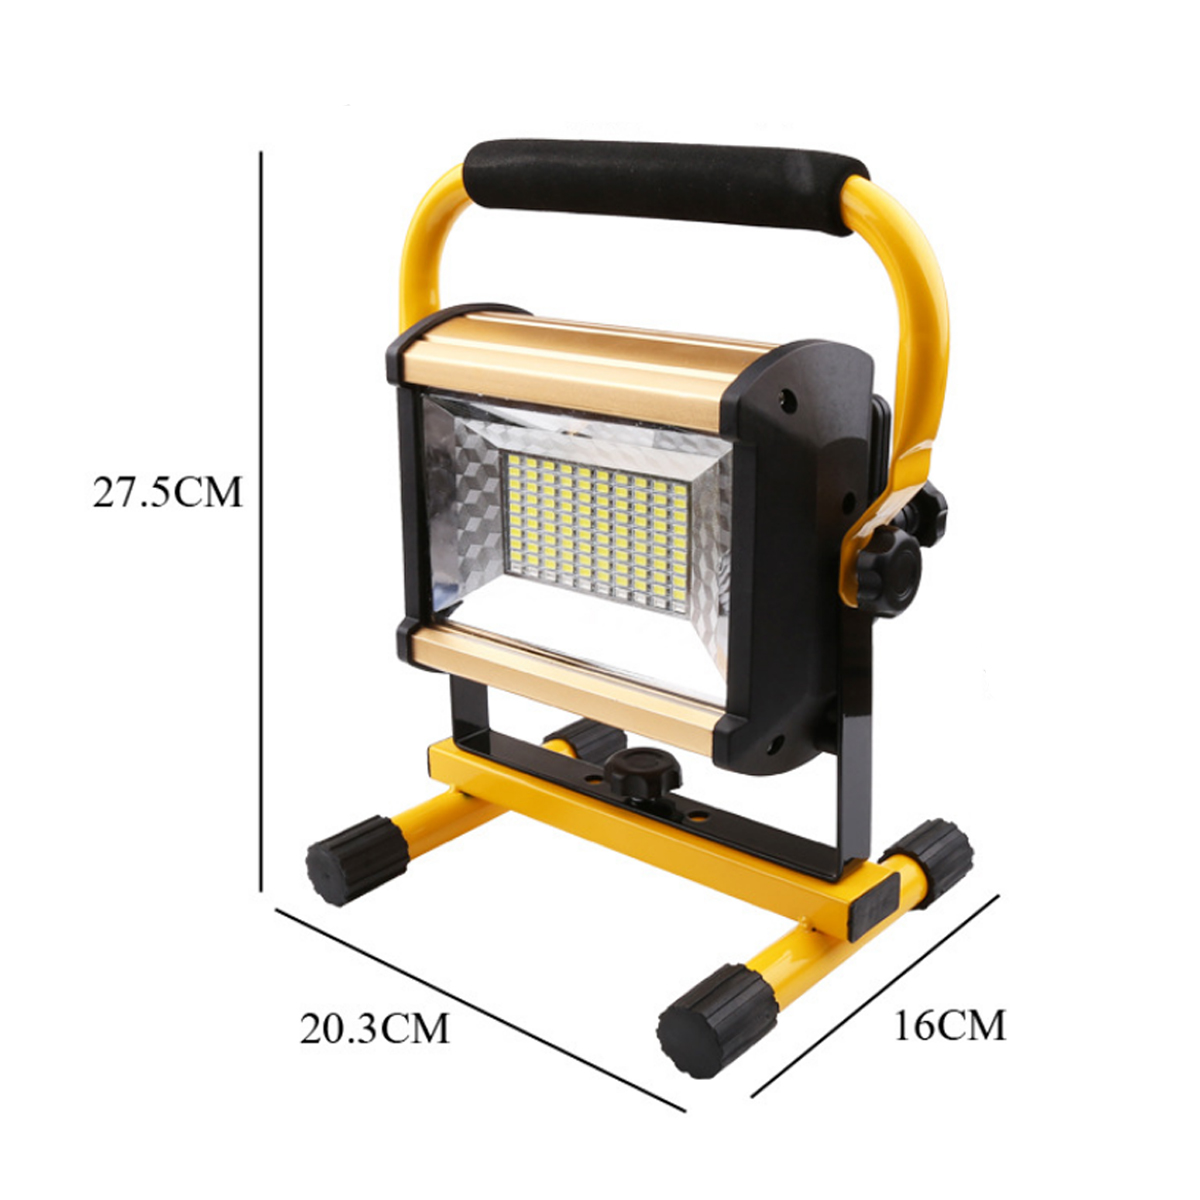 Lampe Led Exterieur Portable 100w 100 Led Projecteur Portable Rechargeable Lampe